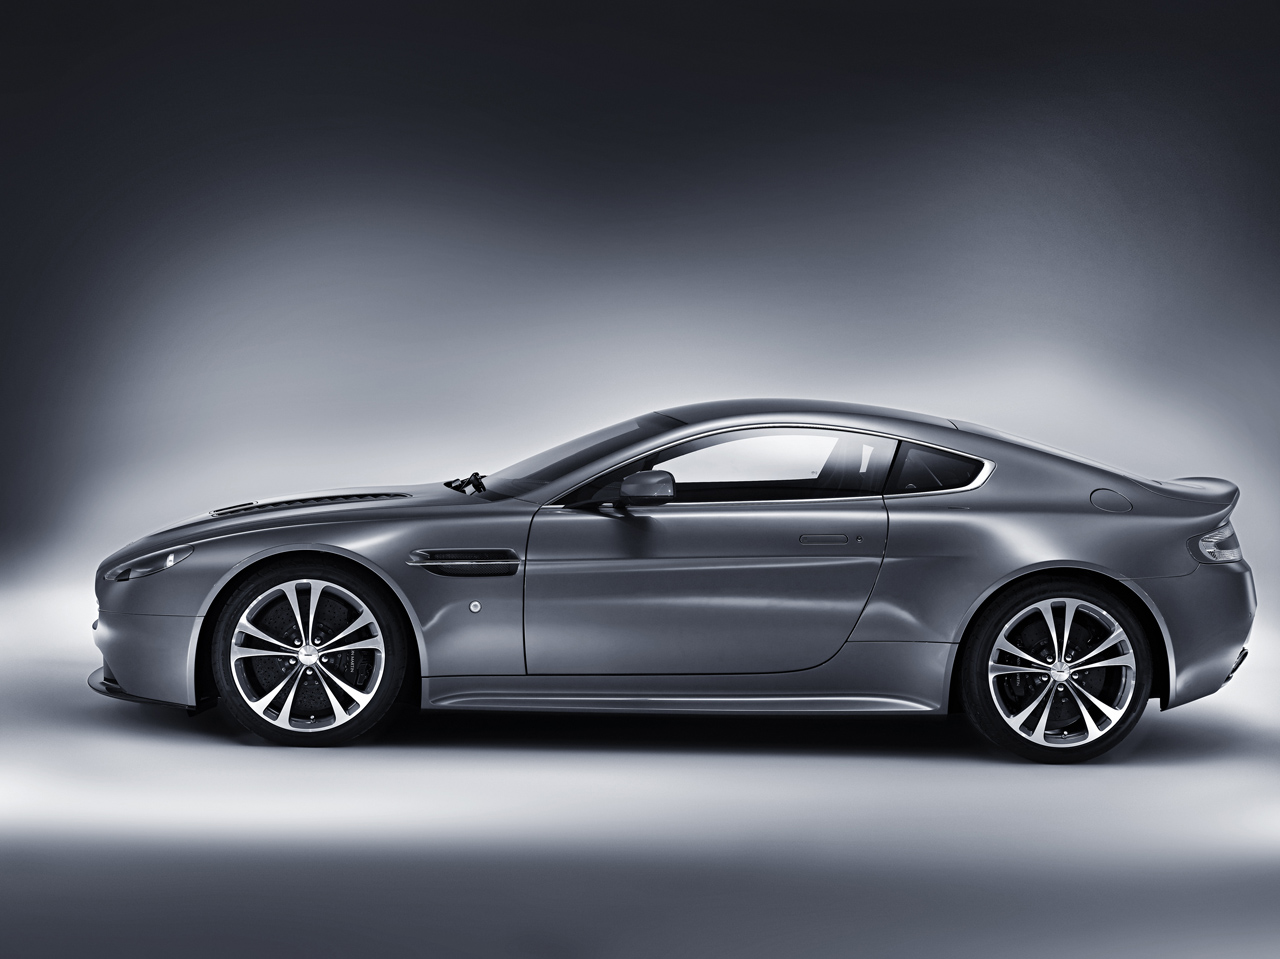 Aston Martin Vantage V12 Wallpaper Free For PC